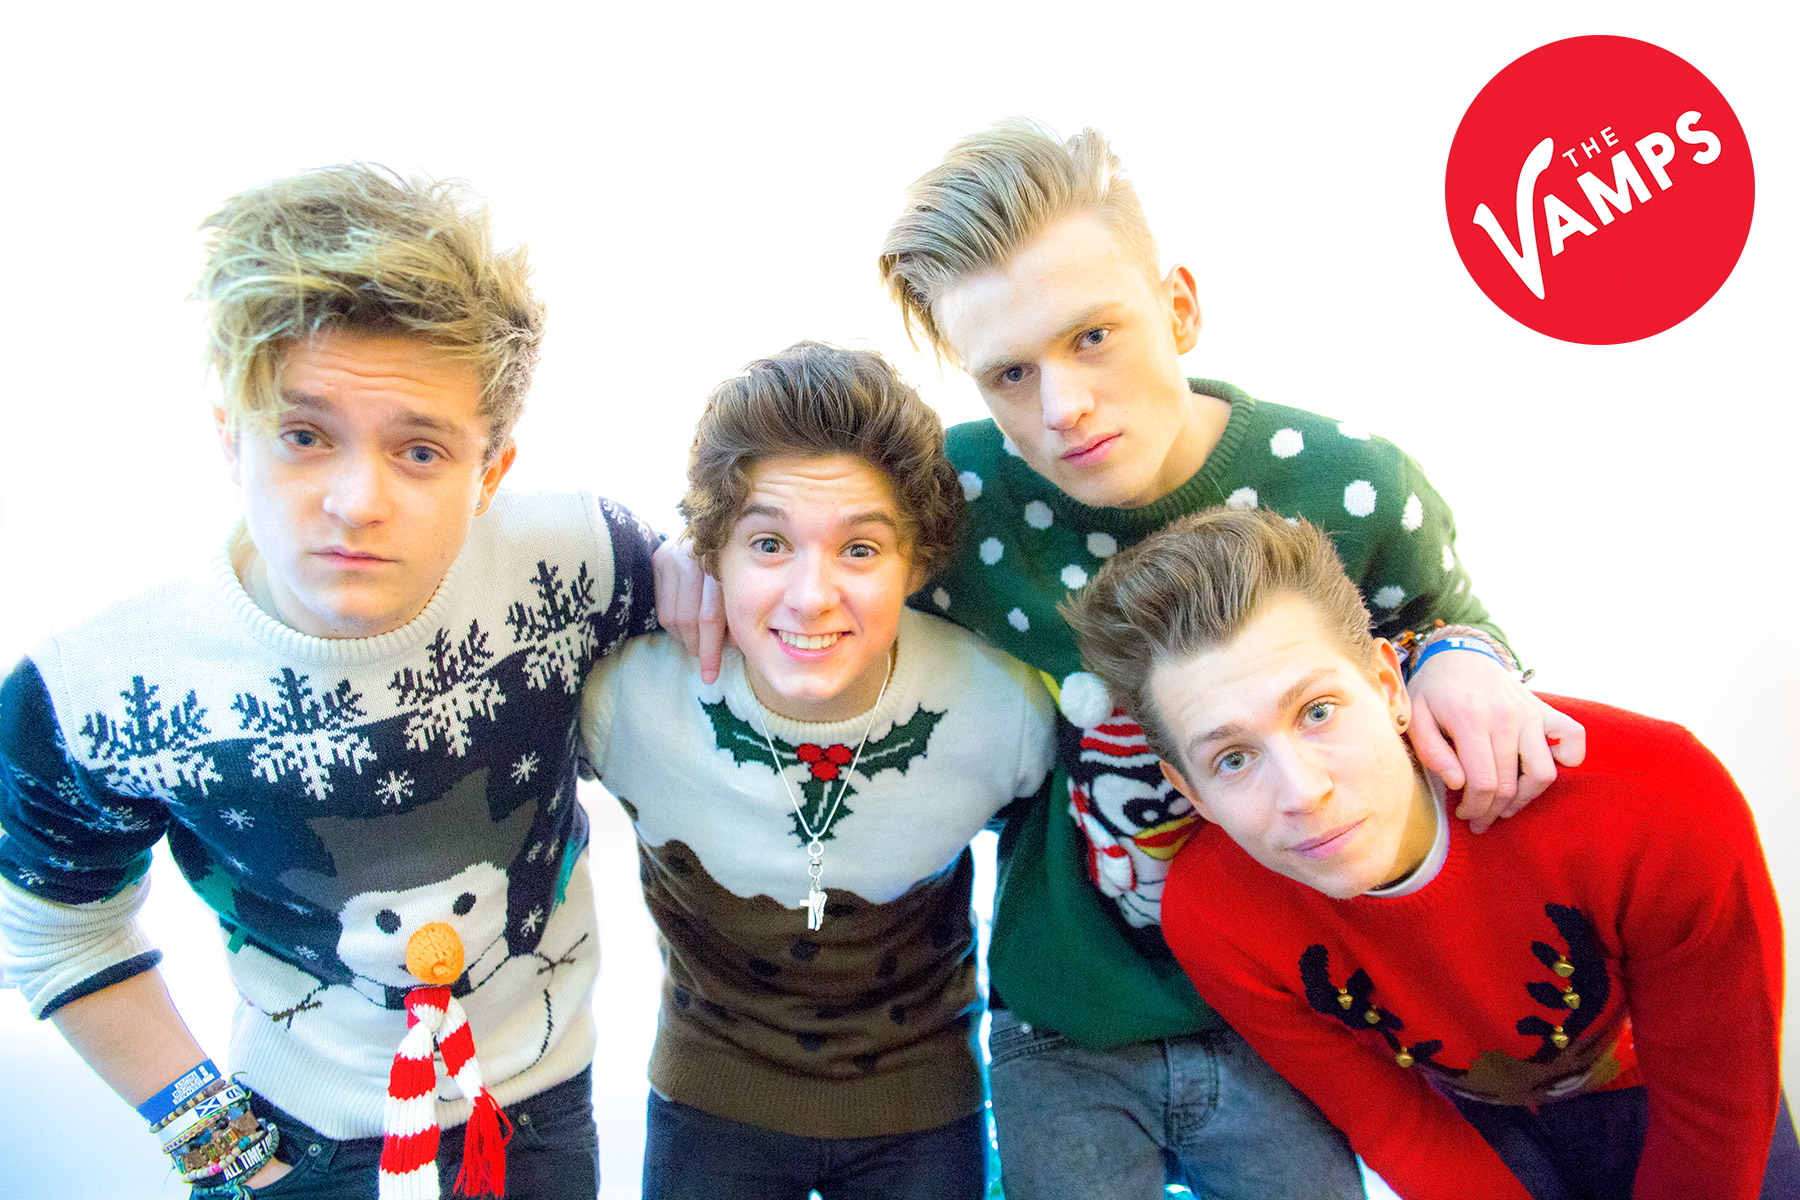 meet the vamps christmas edition tracklist